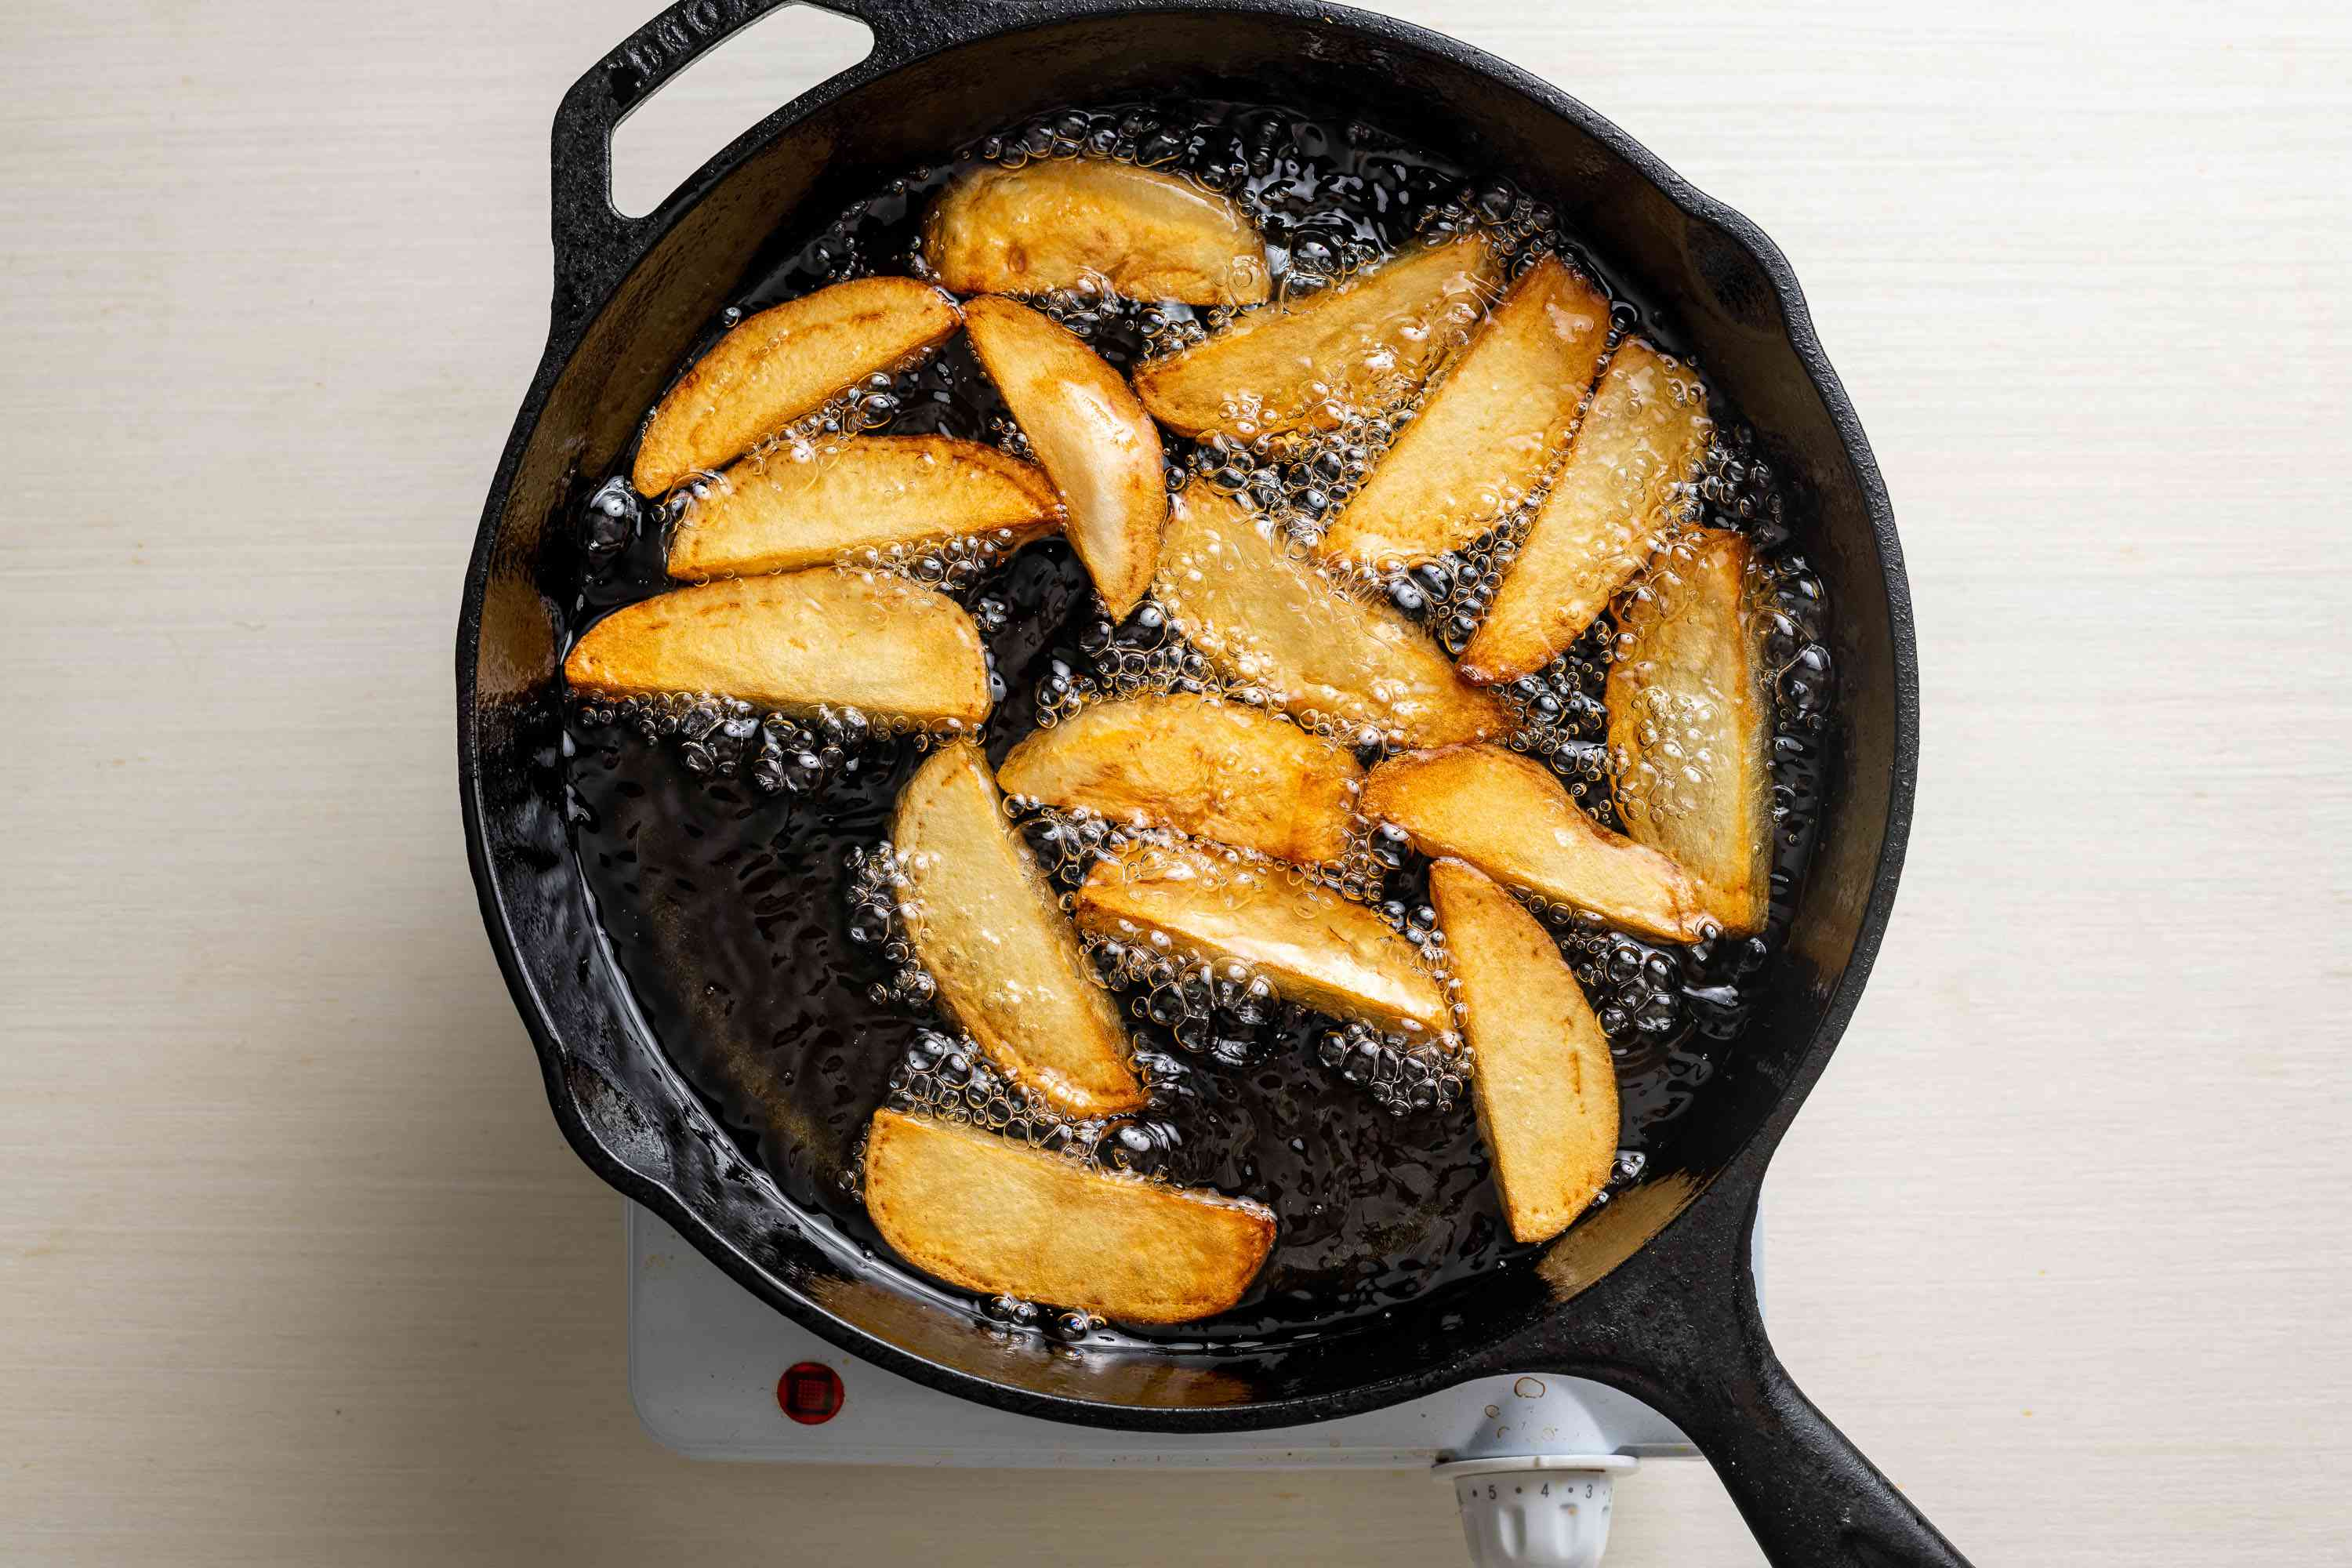 fries in a skillet with oil